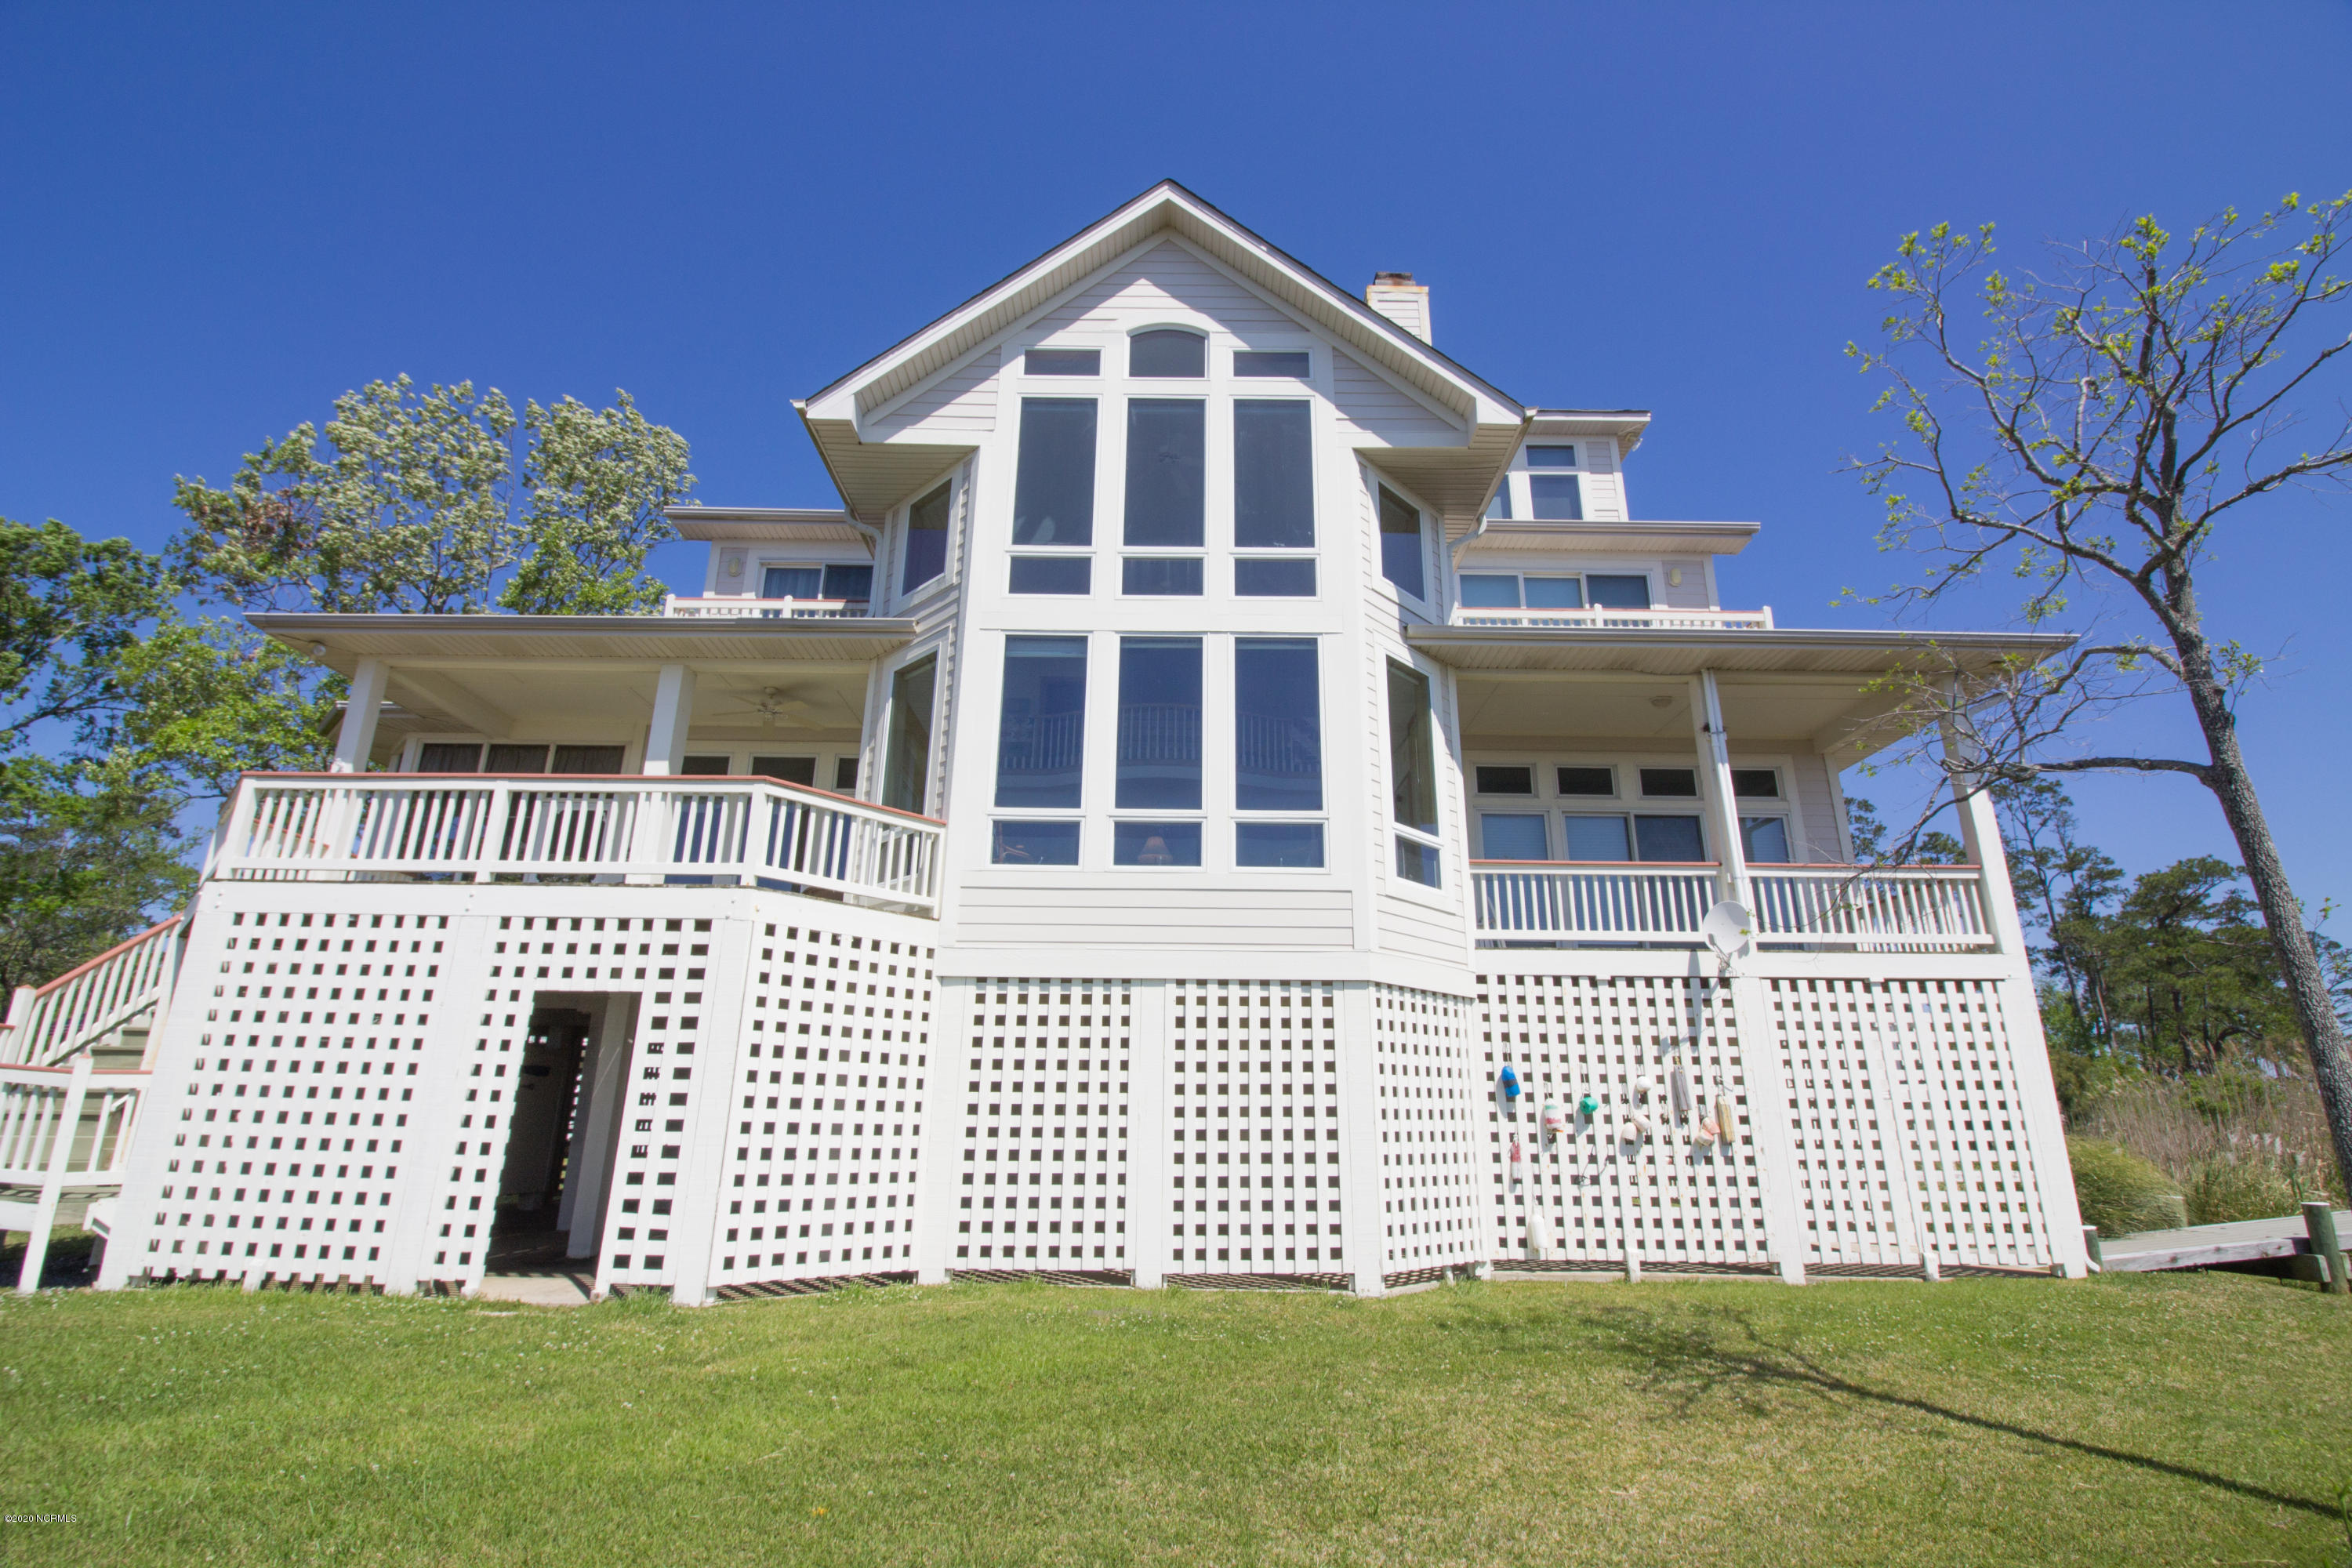 105 Commodore Point, Belhaven, North Carolina 27810, 3 Bedrooms Bedrooms, 8 Rooms Rooms,3 BathroomsBathrooms,Single family residence,For sale,Commodore,100214887